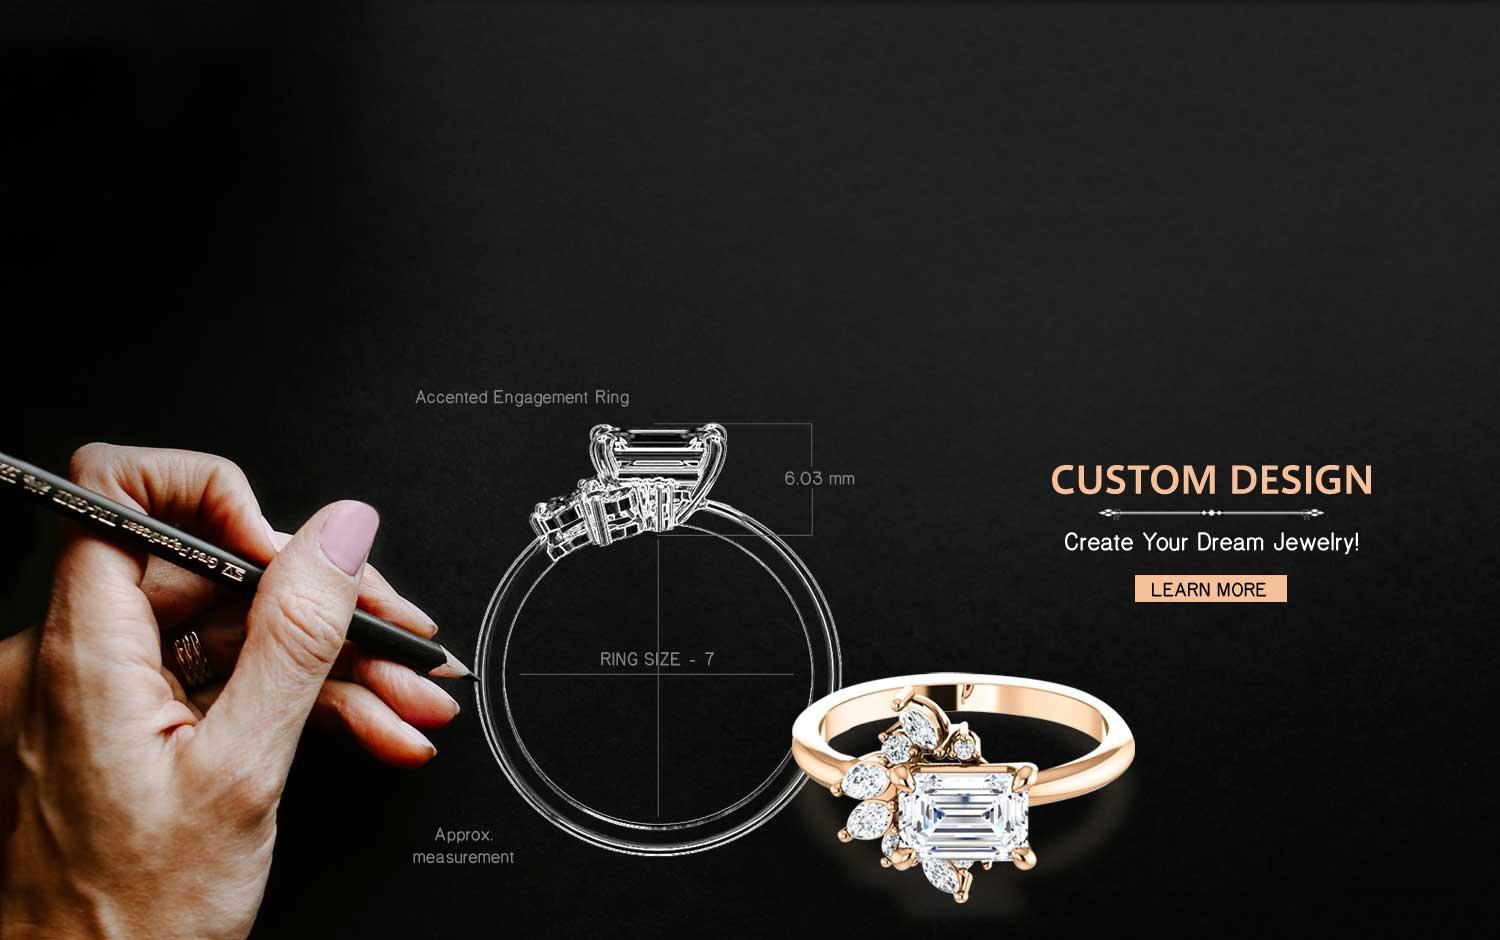 Custom Design Your Dream Jewelry At Delta Diamond Setters & Jewelers